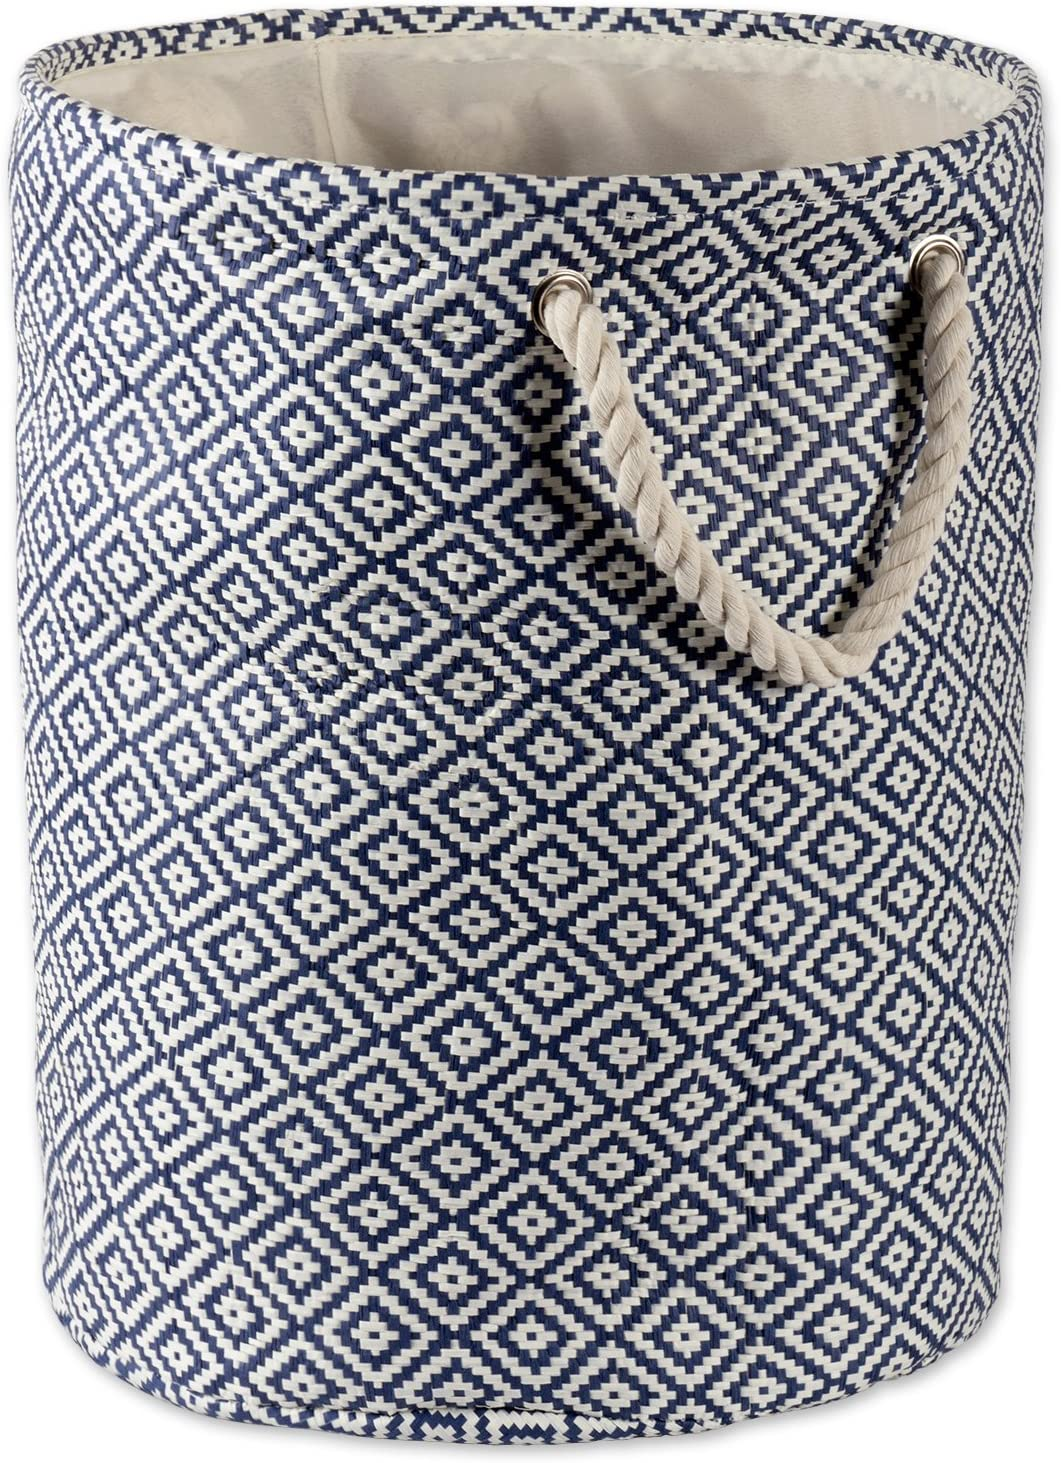 DII Geo Diamond Woven Paper Laundry Hamper or Storage Bin, Large Round, Nautical Blue